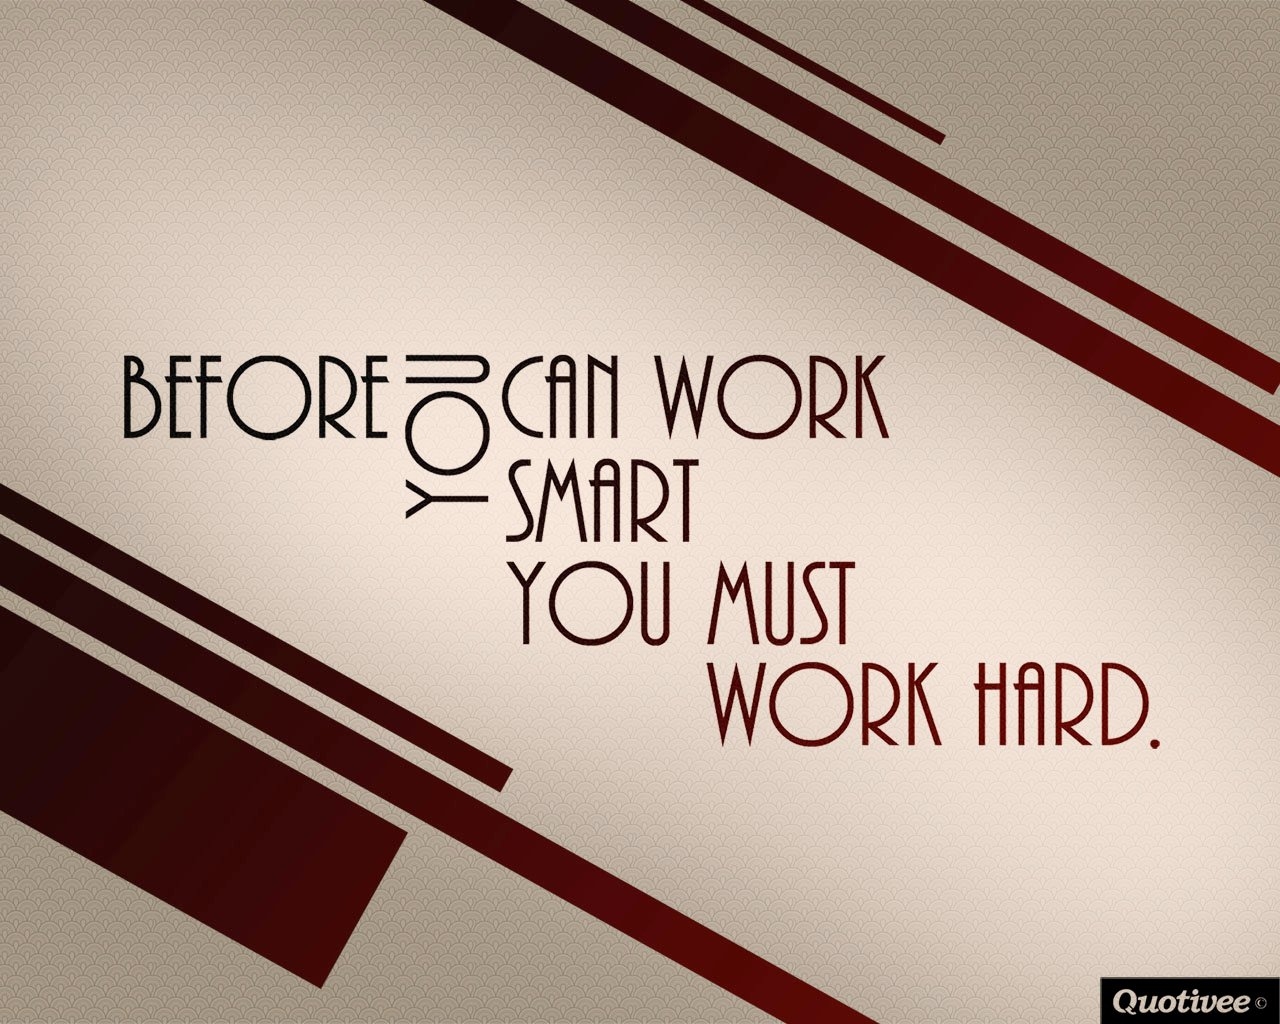 Wallpaper on Work Hard Before you can work smart you must work hard 1280x1024